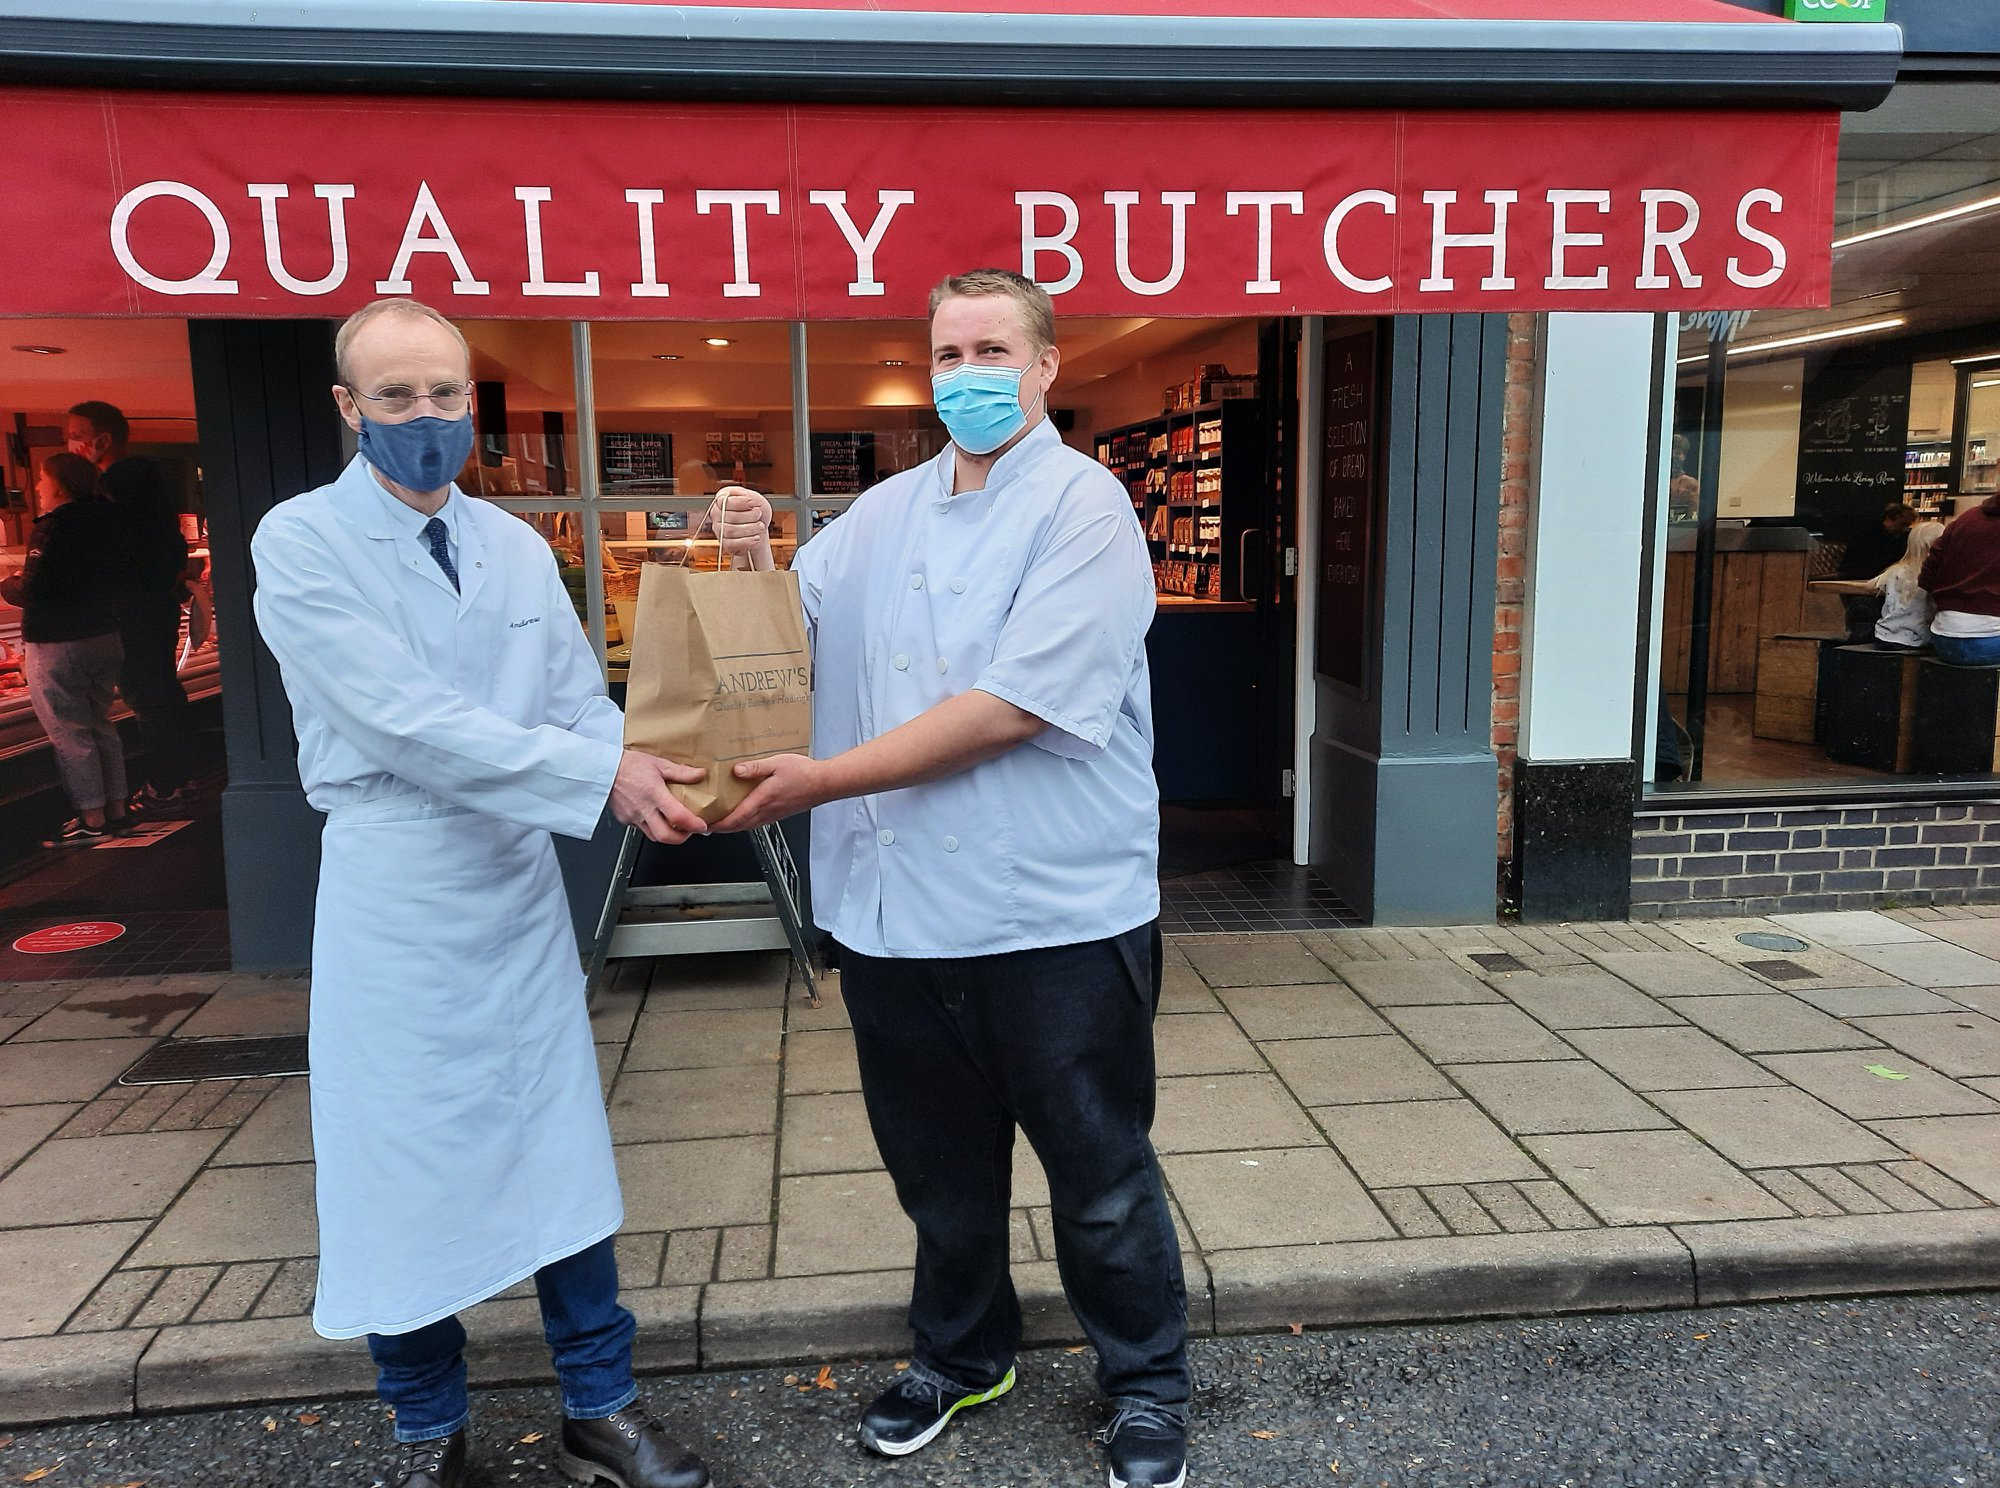 Andrews Butchers in #Hadleigh very kindly donated produce to Hadleigh Nursing Home